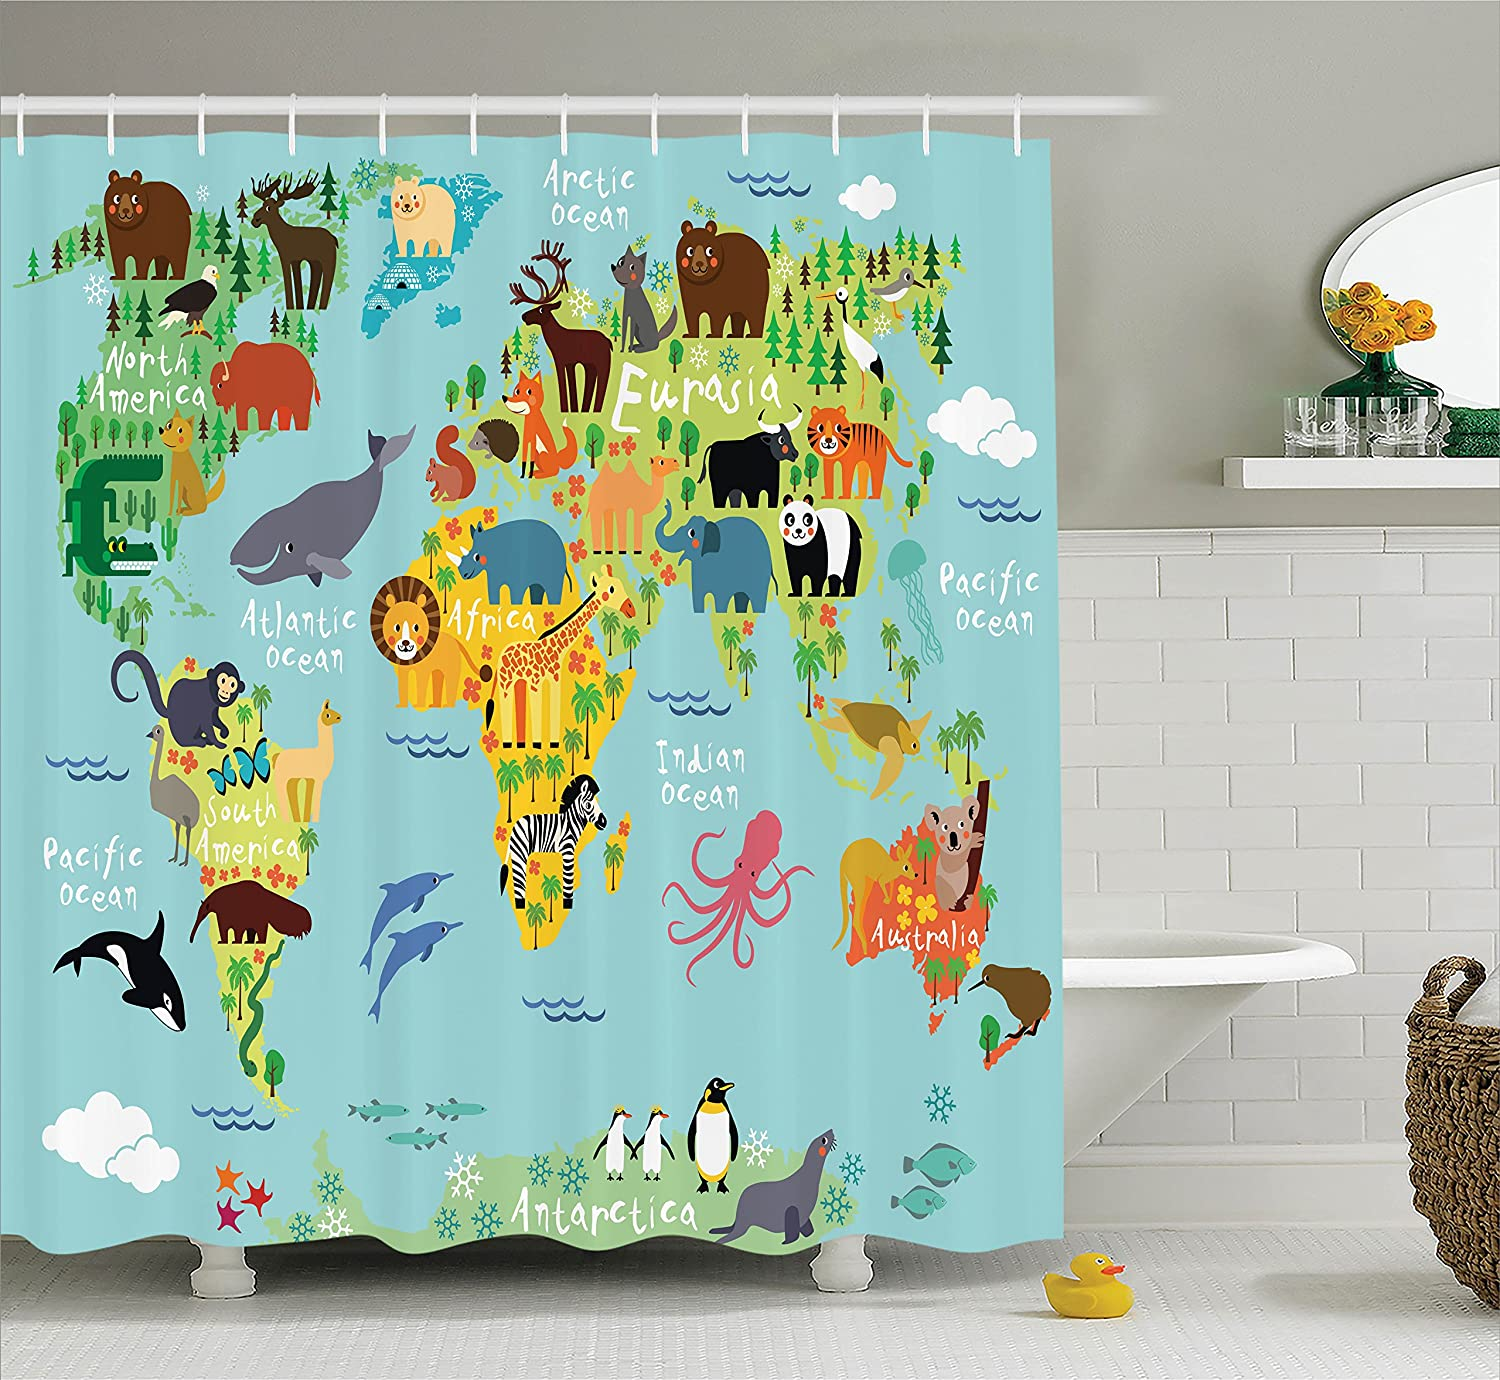 Ambesonne Wanderlust Shower Curtain Decor, Animal Map of The World for Children and Kids Cartoon Mountains Forests Image, Polyester Fabric Bathroom Shower Curtain Set with Hooks, Green Yellow Blue